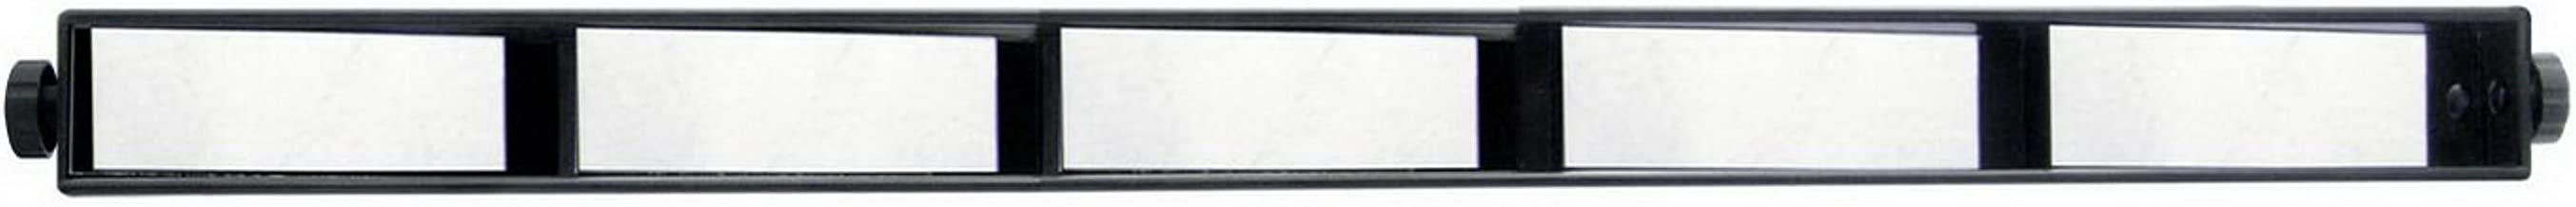 Pilot Automotive MI-032 Five Panel Rear View Mirror with Five Angled Mirrors